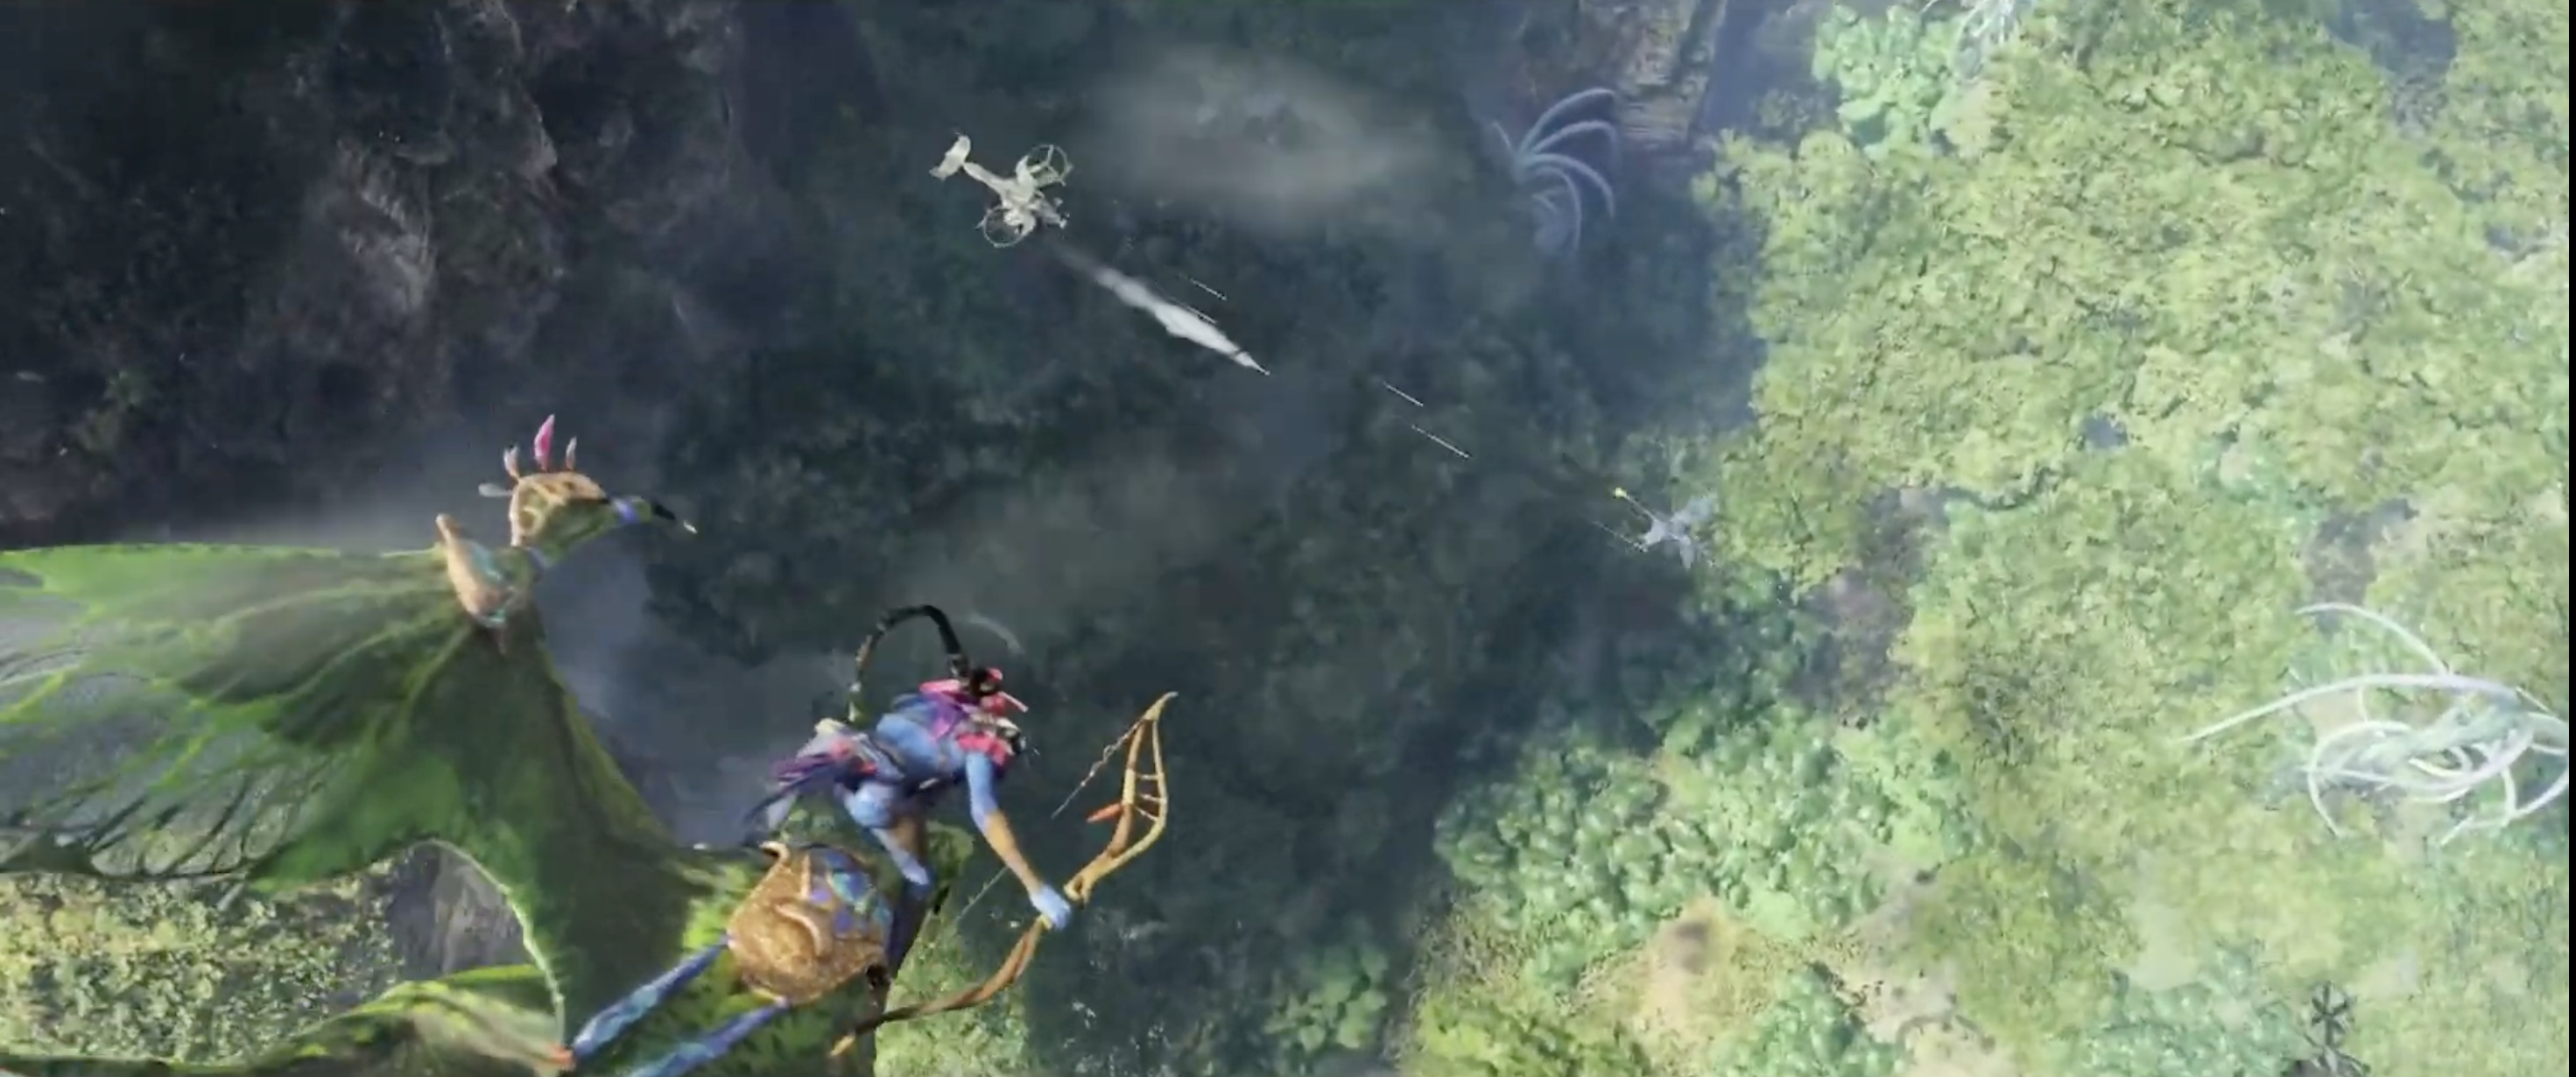 E3 2021: 'Avatar: Frontiers of Pandora' and 'Mario + Rabbids,' rest of latest video game announcements